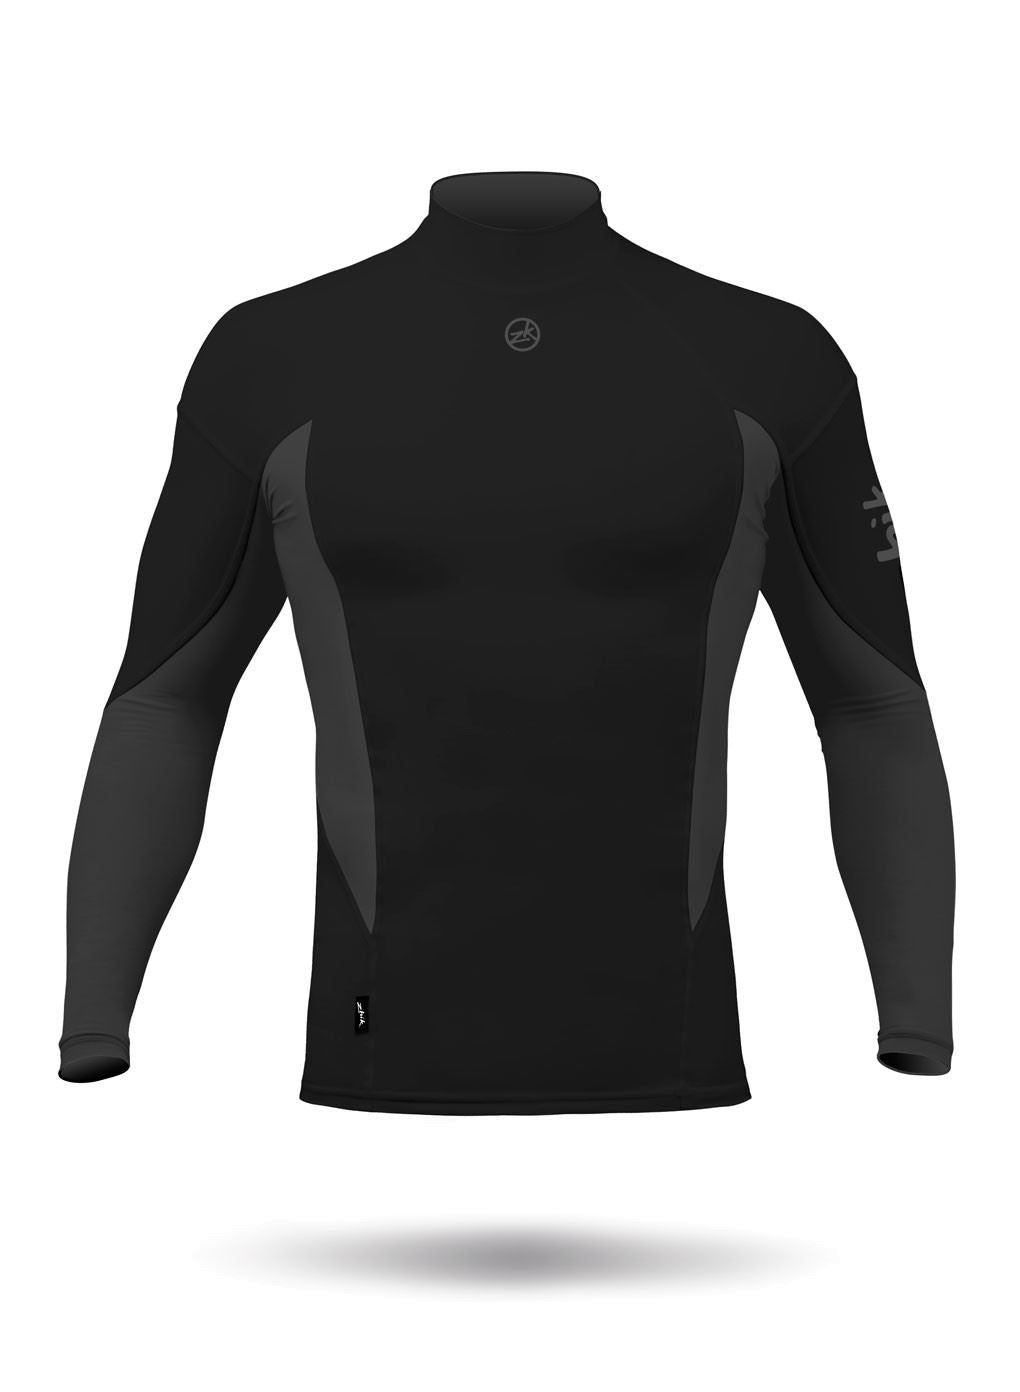 Mens Zhik Long Sleeve Spandex Rash Vest Top - Black